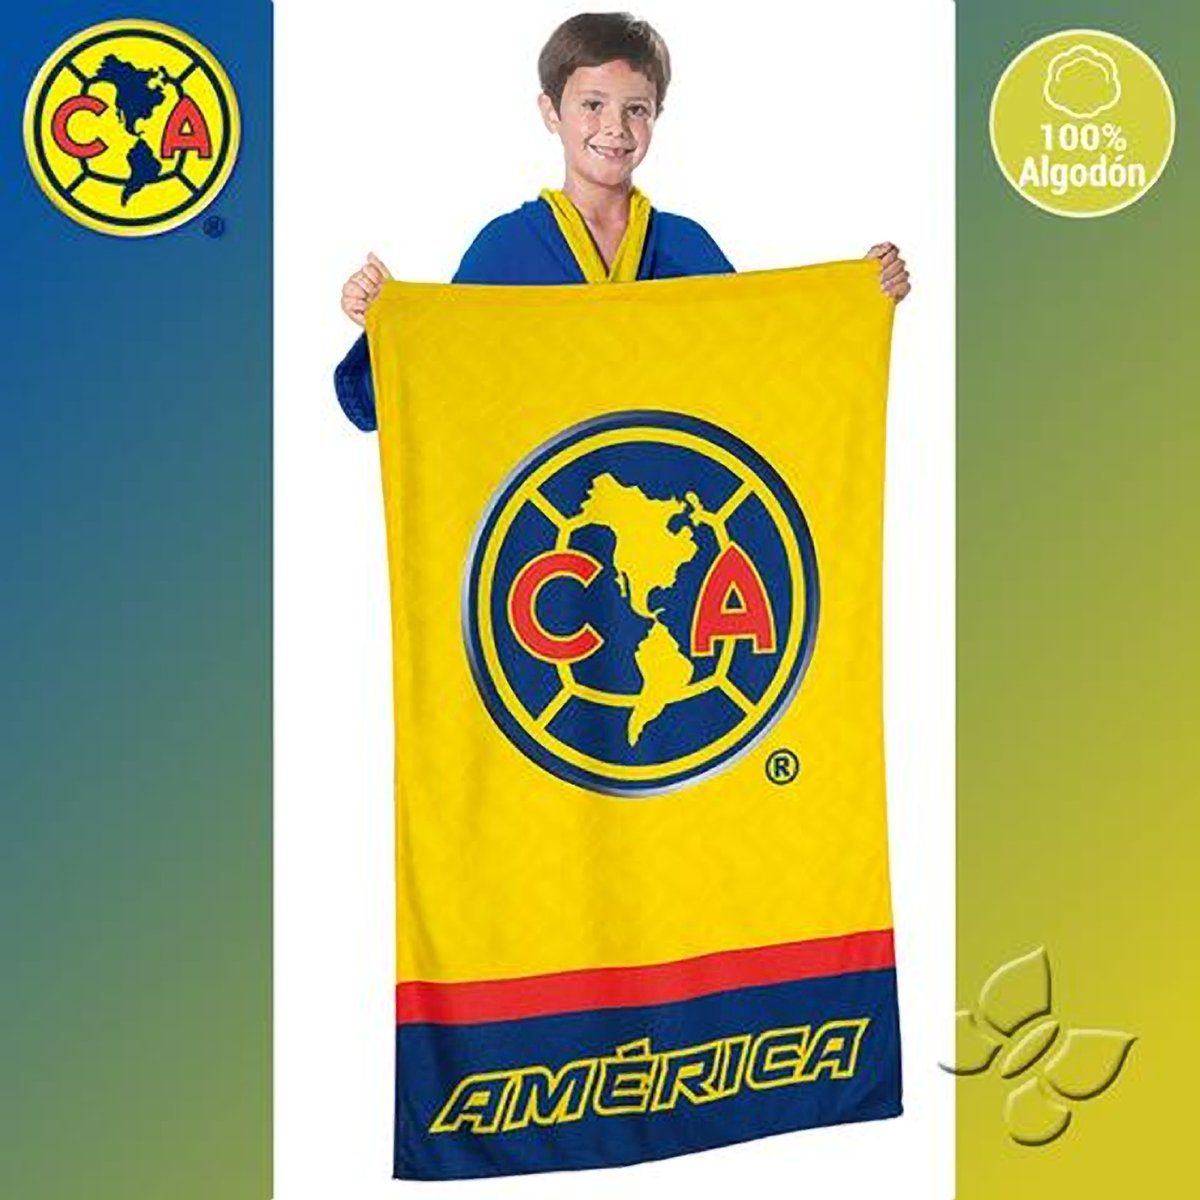 America Club Soccet Team Aguilar Towel Sports Gift Futbol Toalla: Home & Kitchen